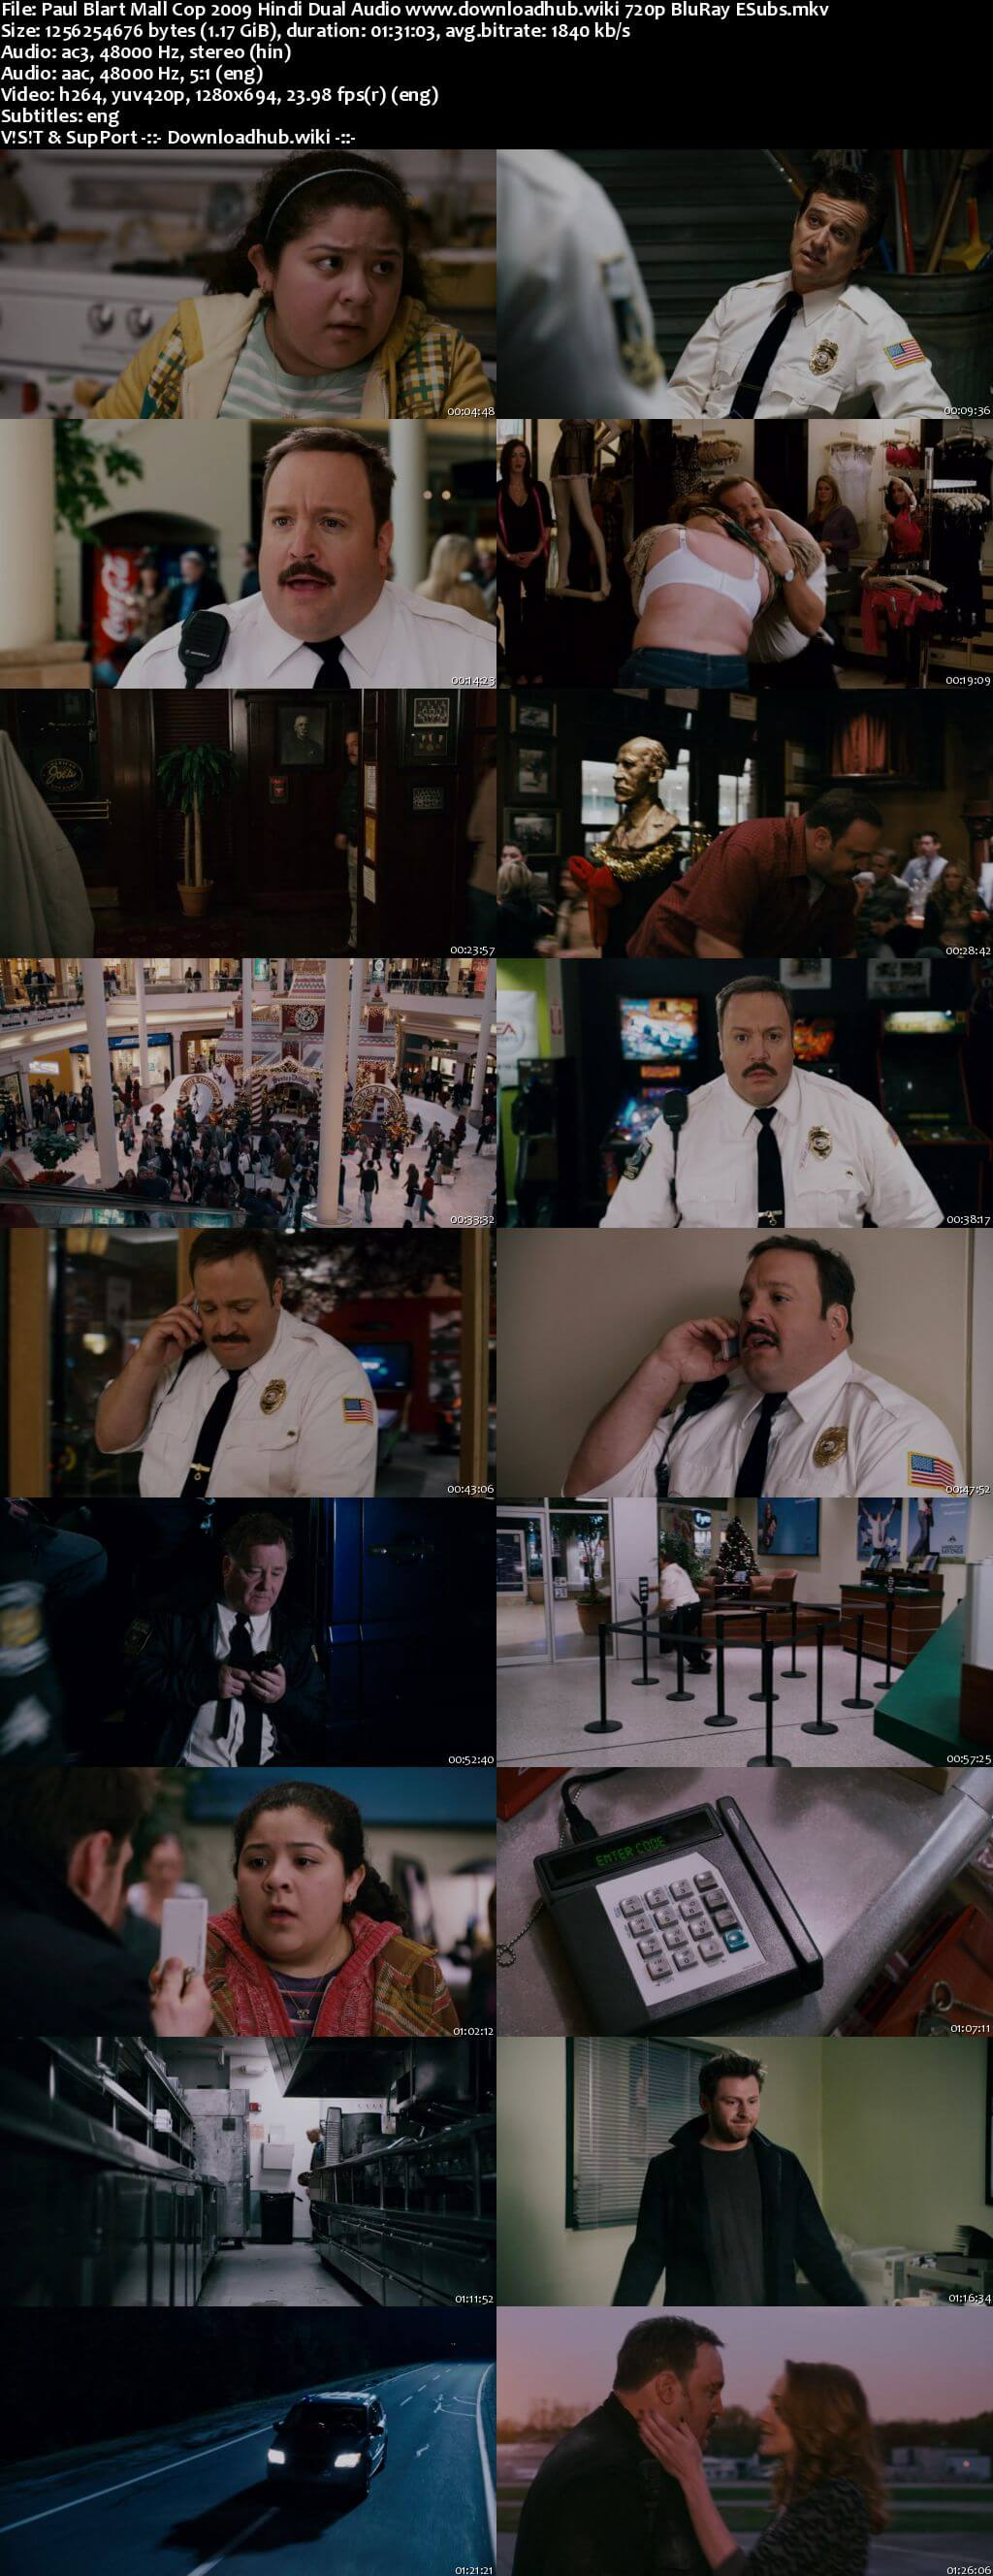 Paul Blart Mall Cop 2009 Hindi Dual Audio 720p BluRay ESubs